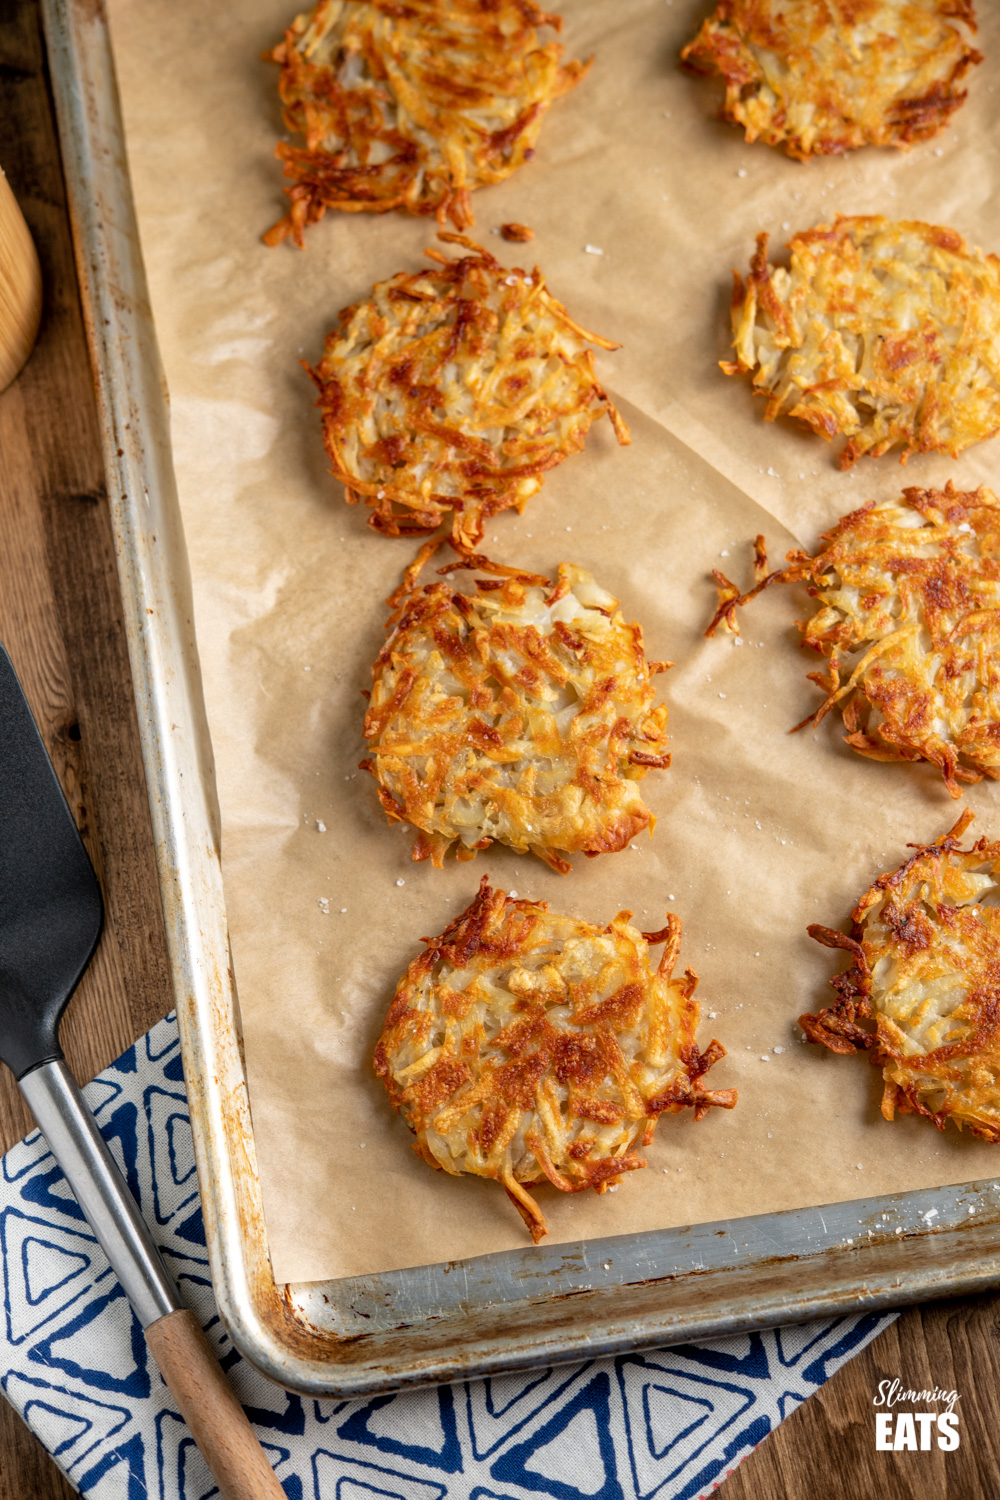 eight hash browns on a parchment lined baking tray